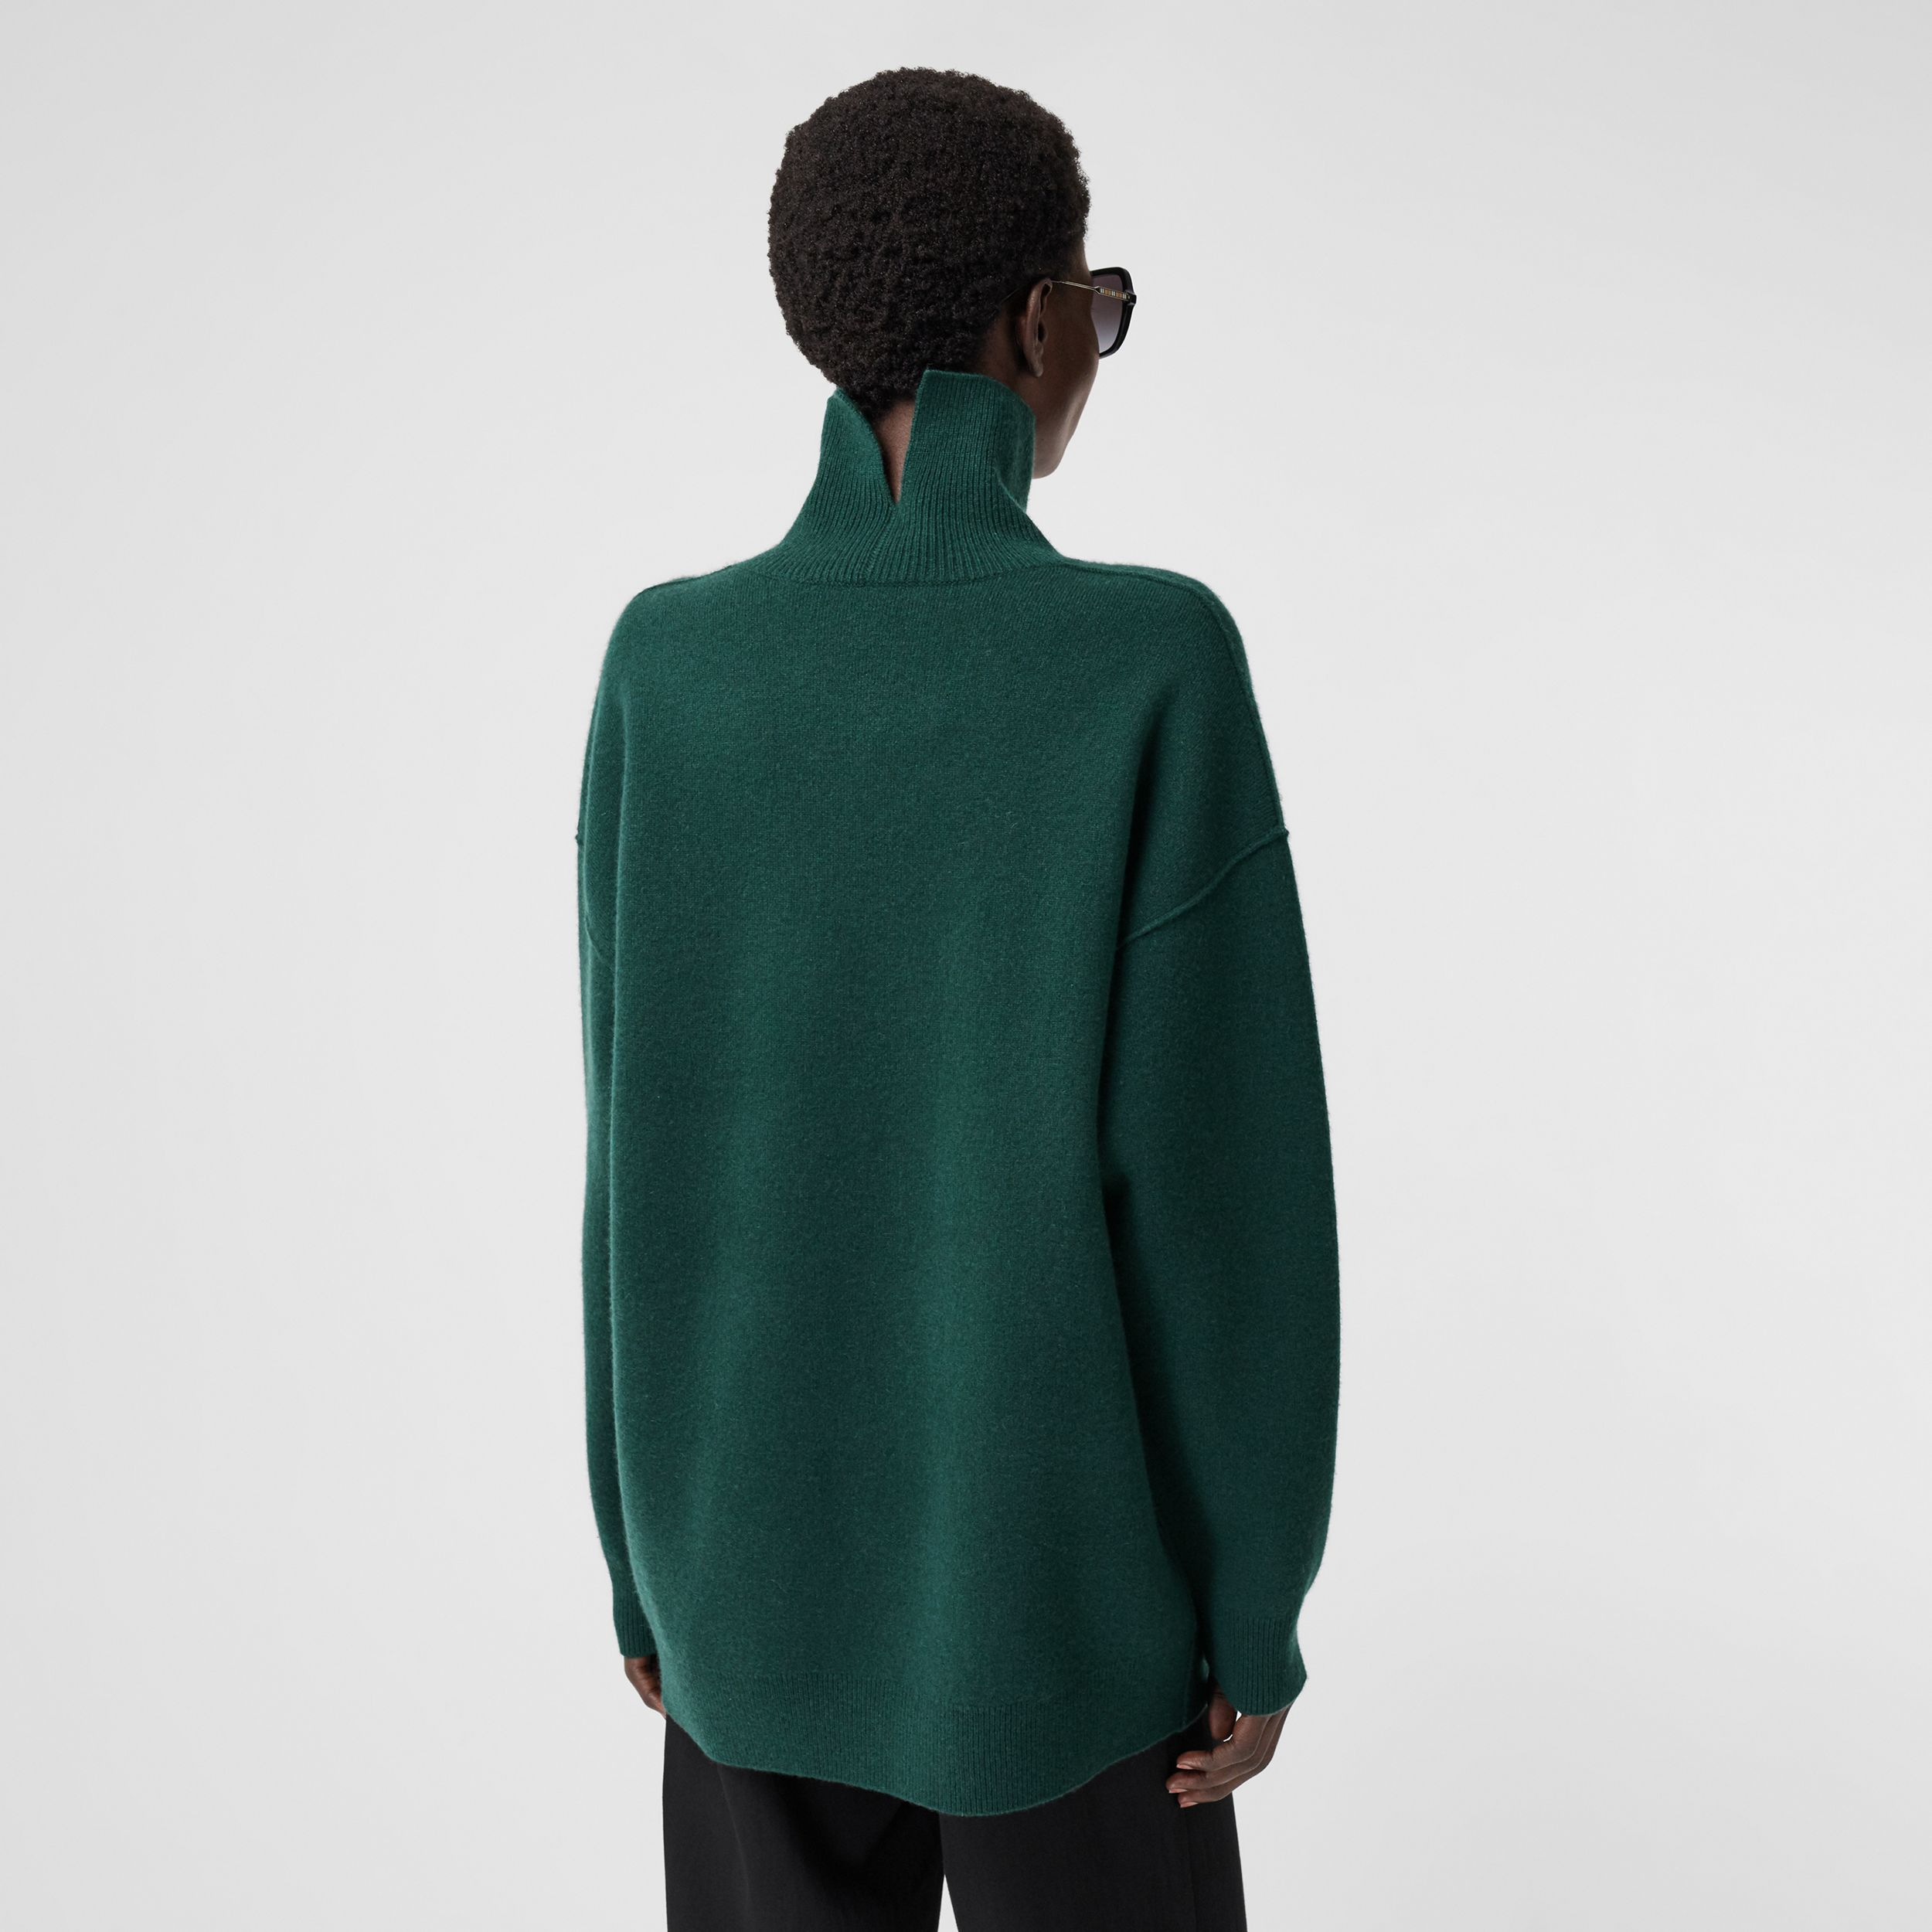 Monogram Motif Cashmere Blend Funnel Neck Sweater in Bottle Green - Women | Burberry Hong Kong S.A.R. - 3